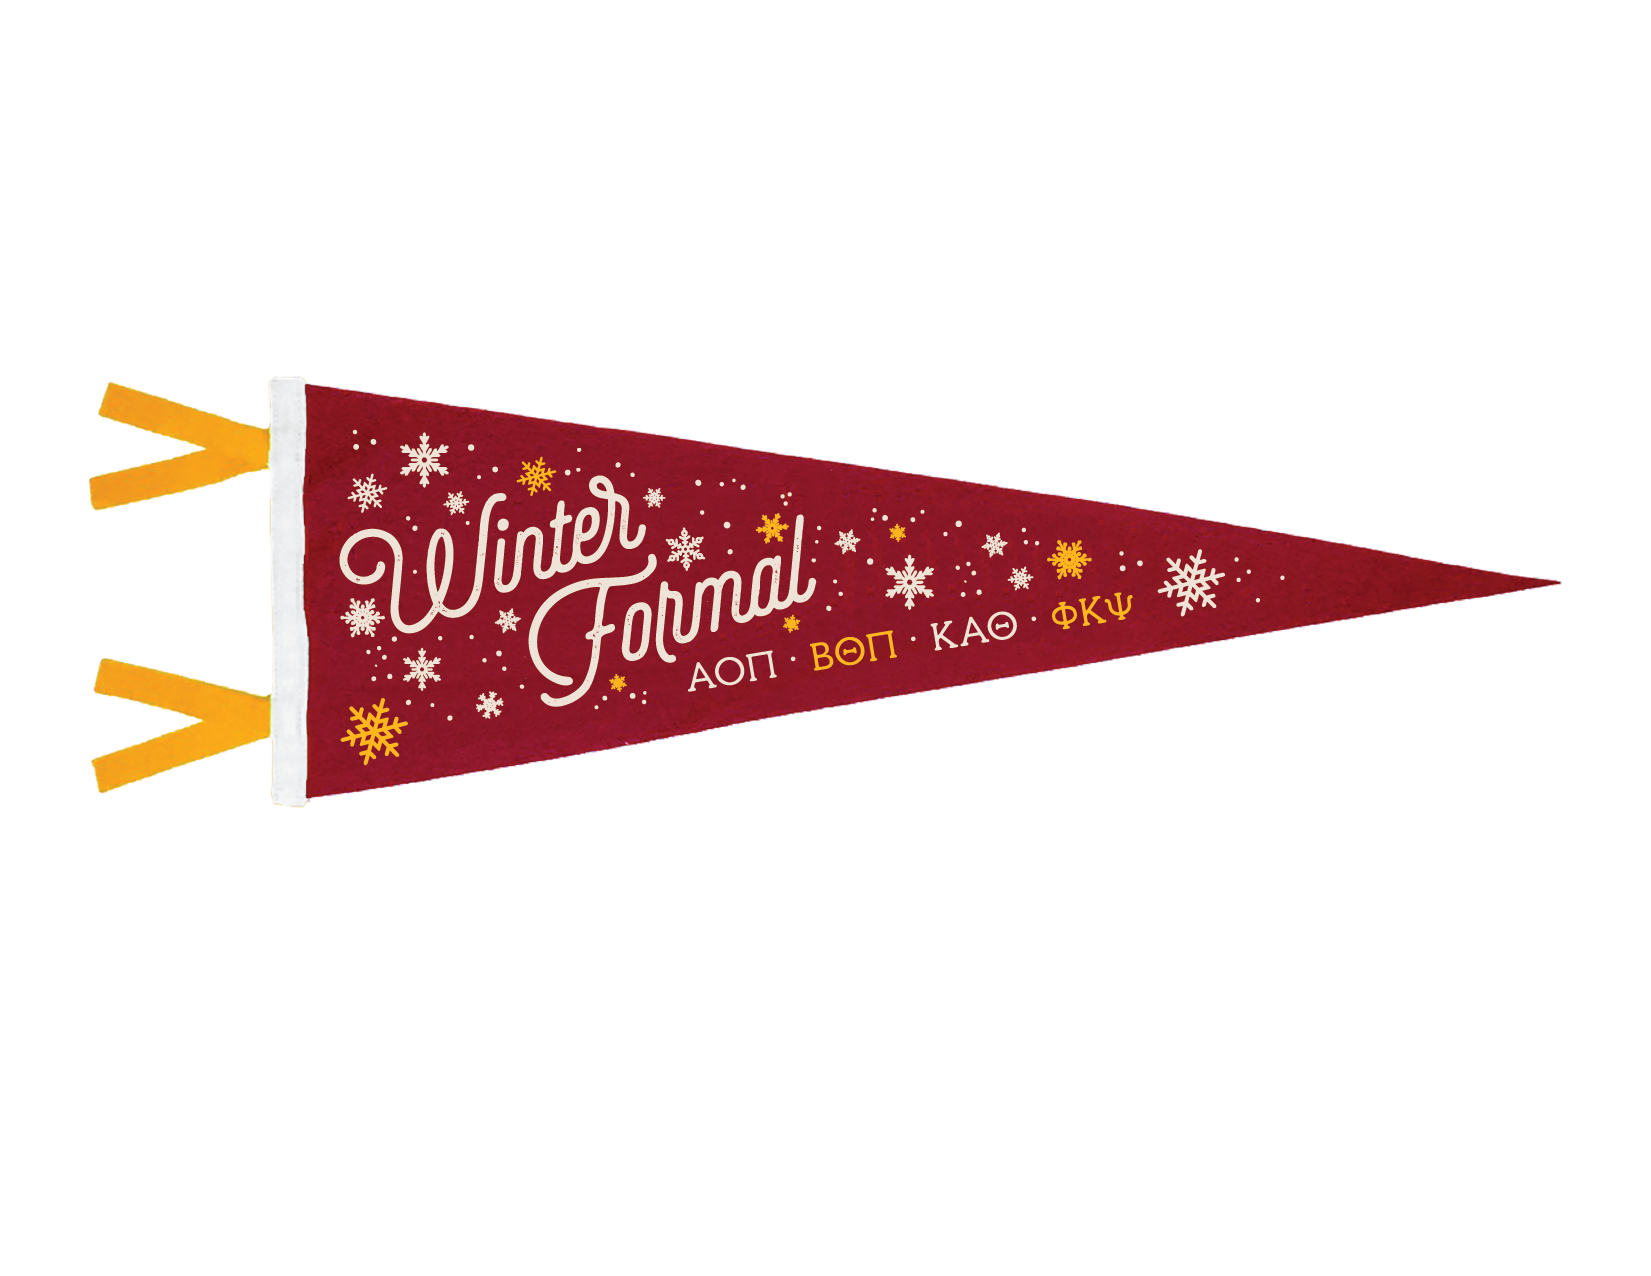 Oxford_Pennant_Event_Designs-02.png